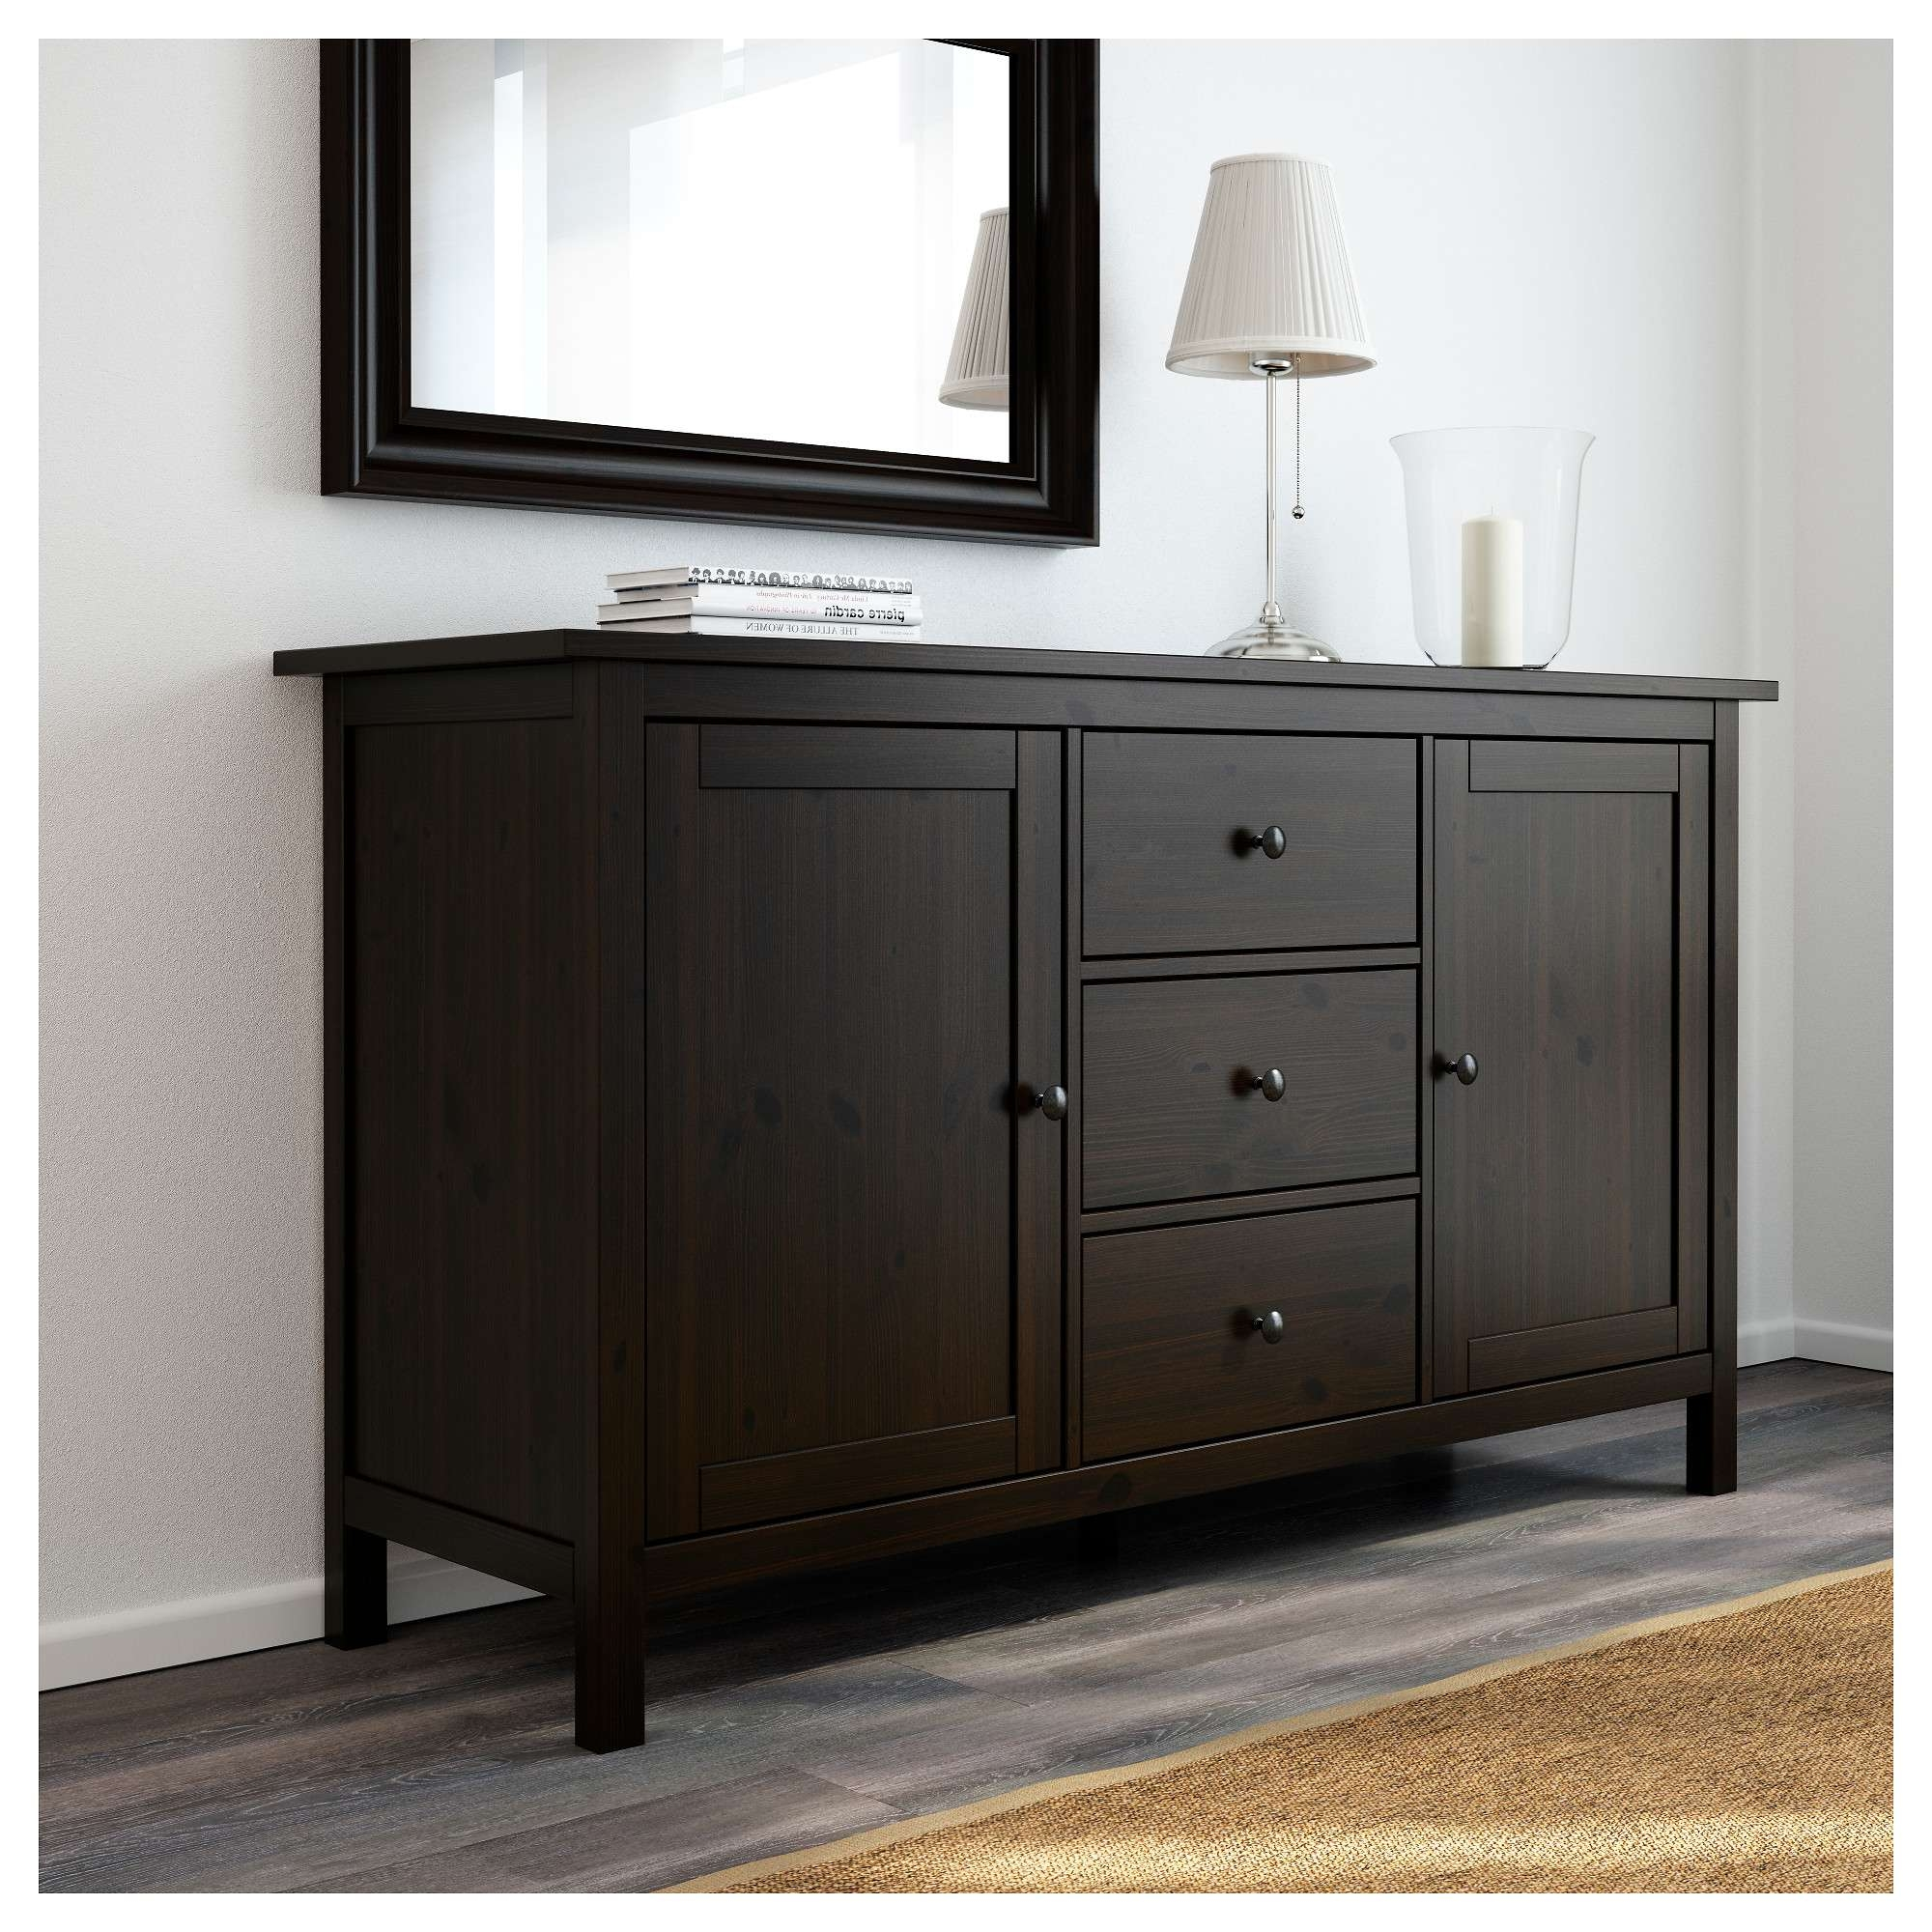 ikea hemnes sideboard swalif. Black Bedroom Furniture Sets. Home Design Ideas